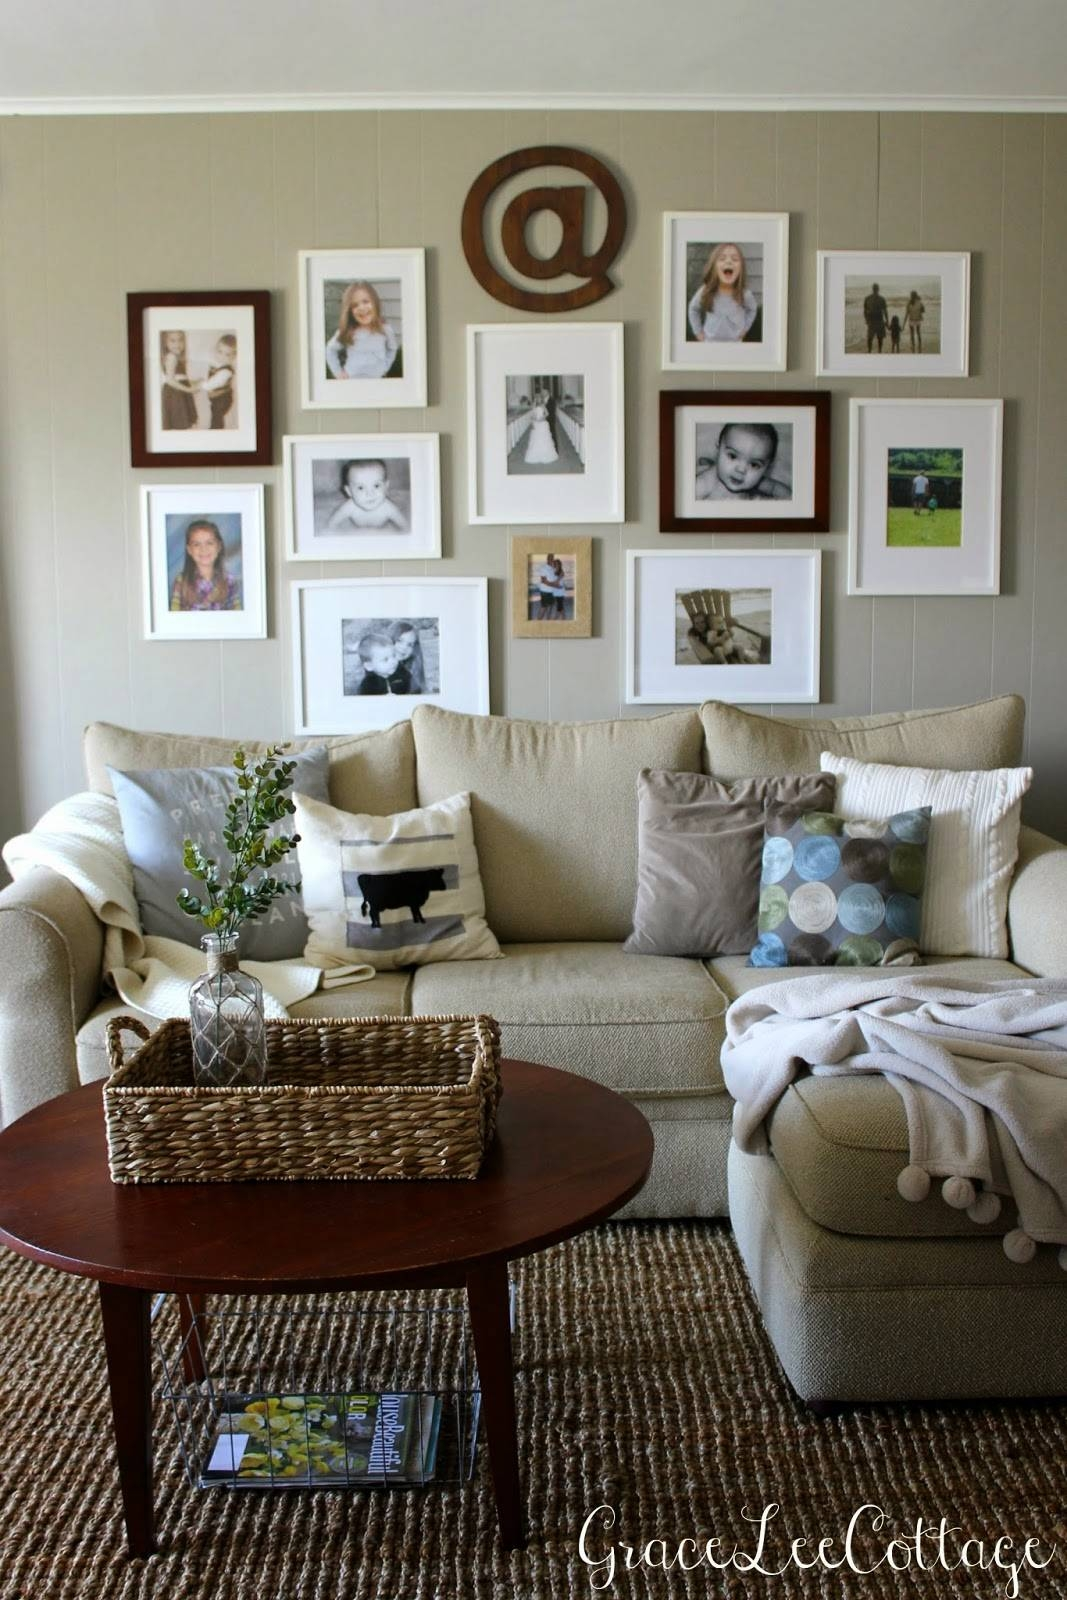 Grace Lee Cottage: Updated Living Room Tour & Source List! throughout Coffee Tables With Baskets Underneath (Image 24 of 30)